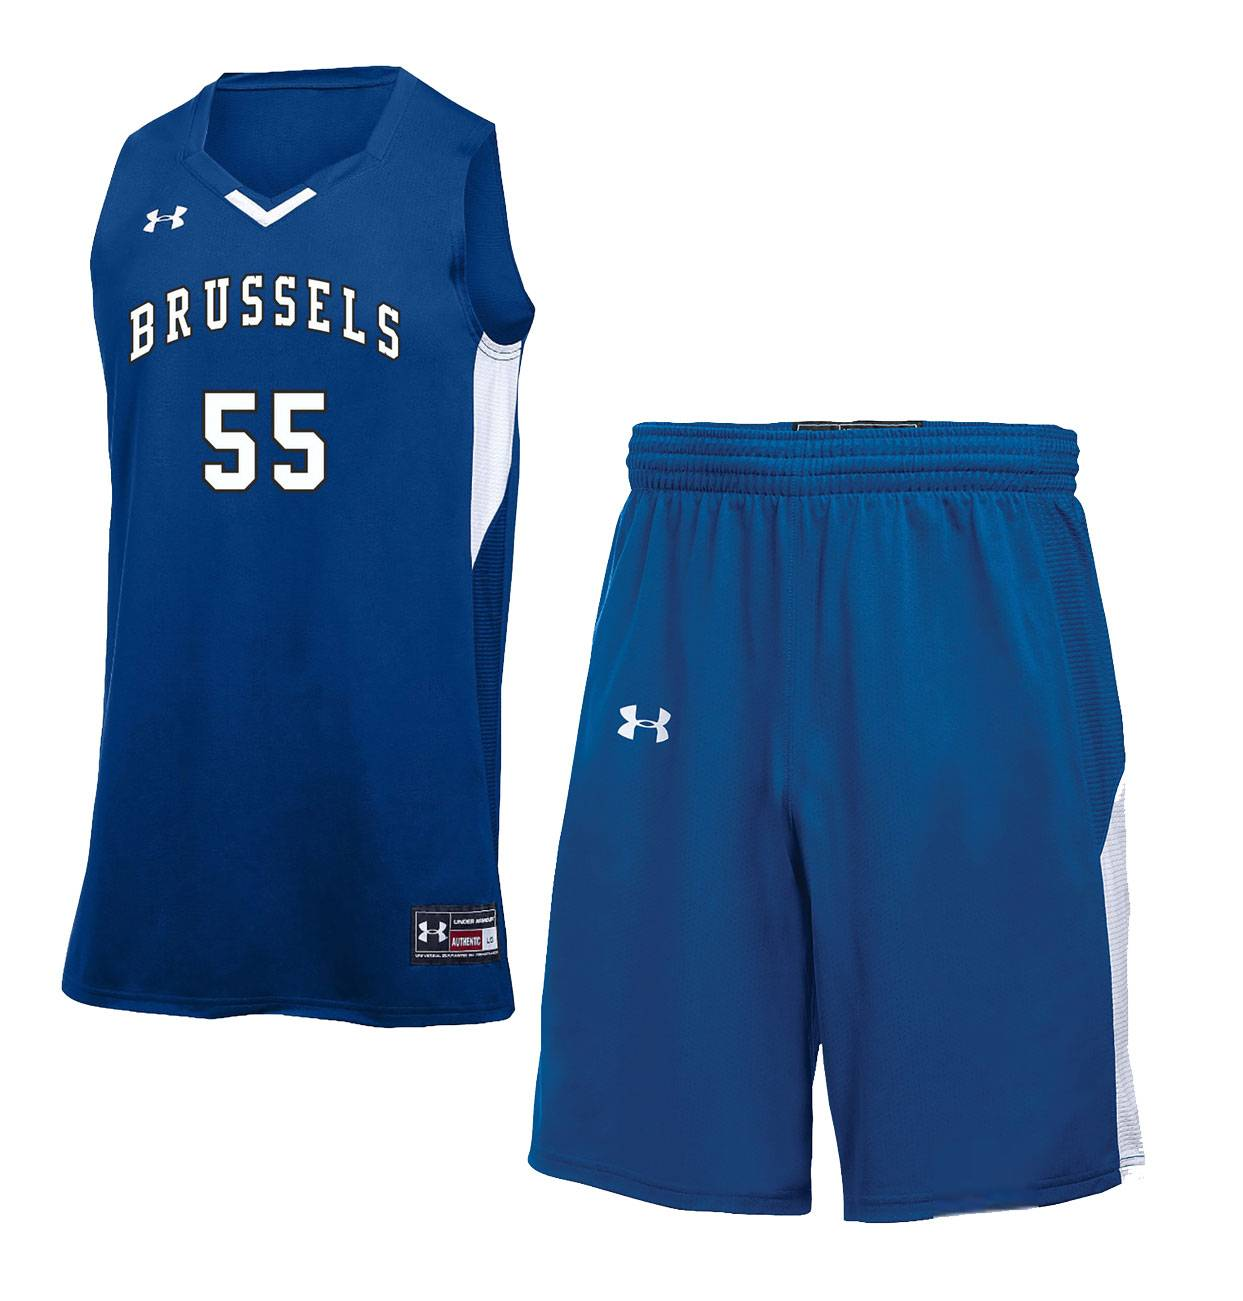 f9815c08c90 Under Armour Youth Jersey